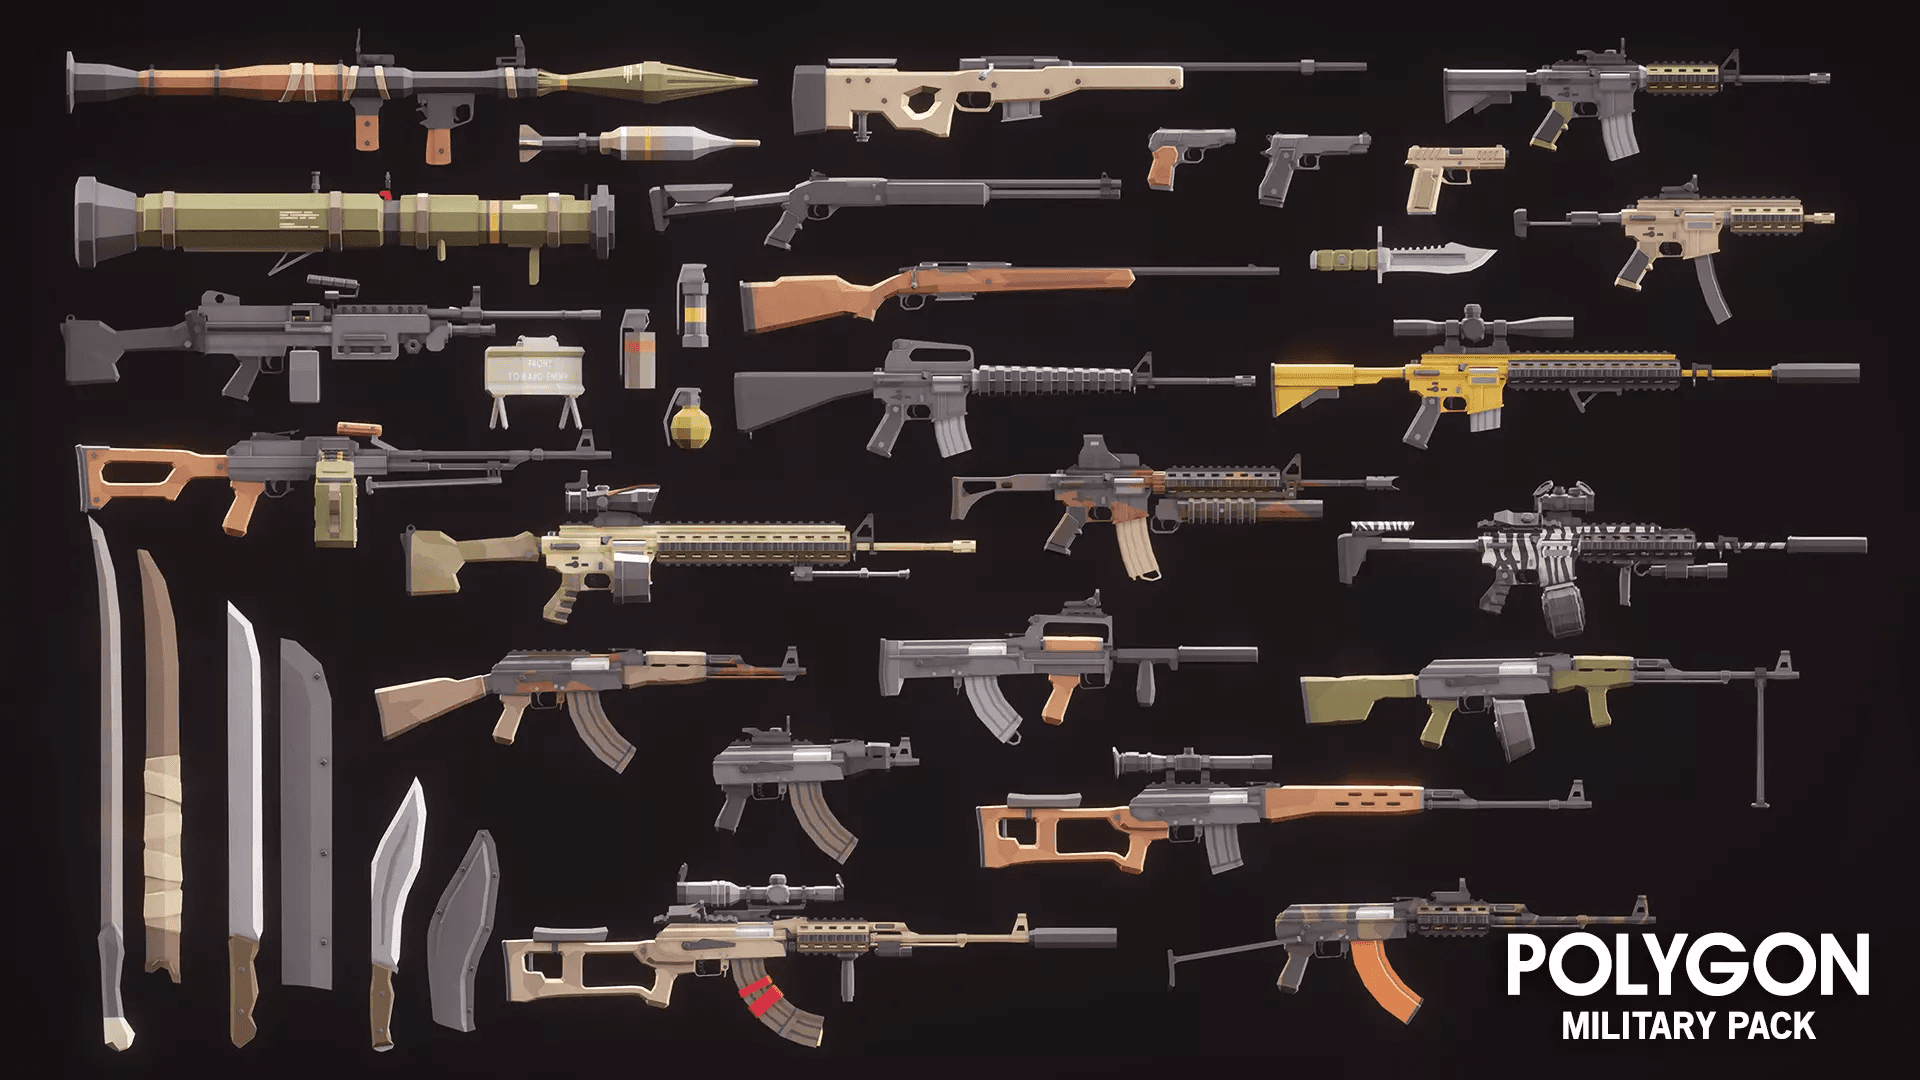 Low Poly Military Pack Weapons Rifles Semi Automatic